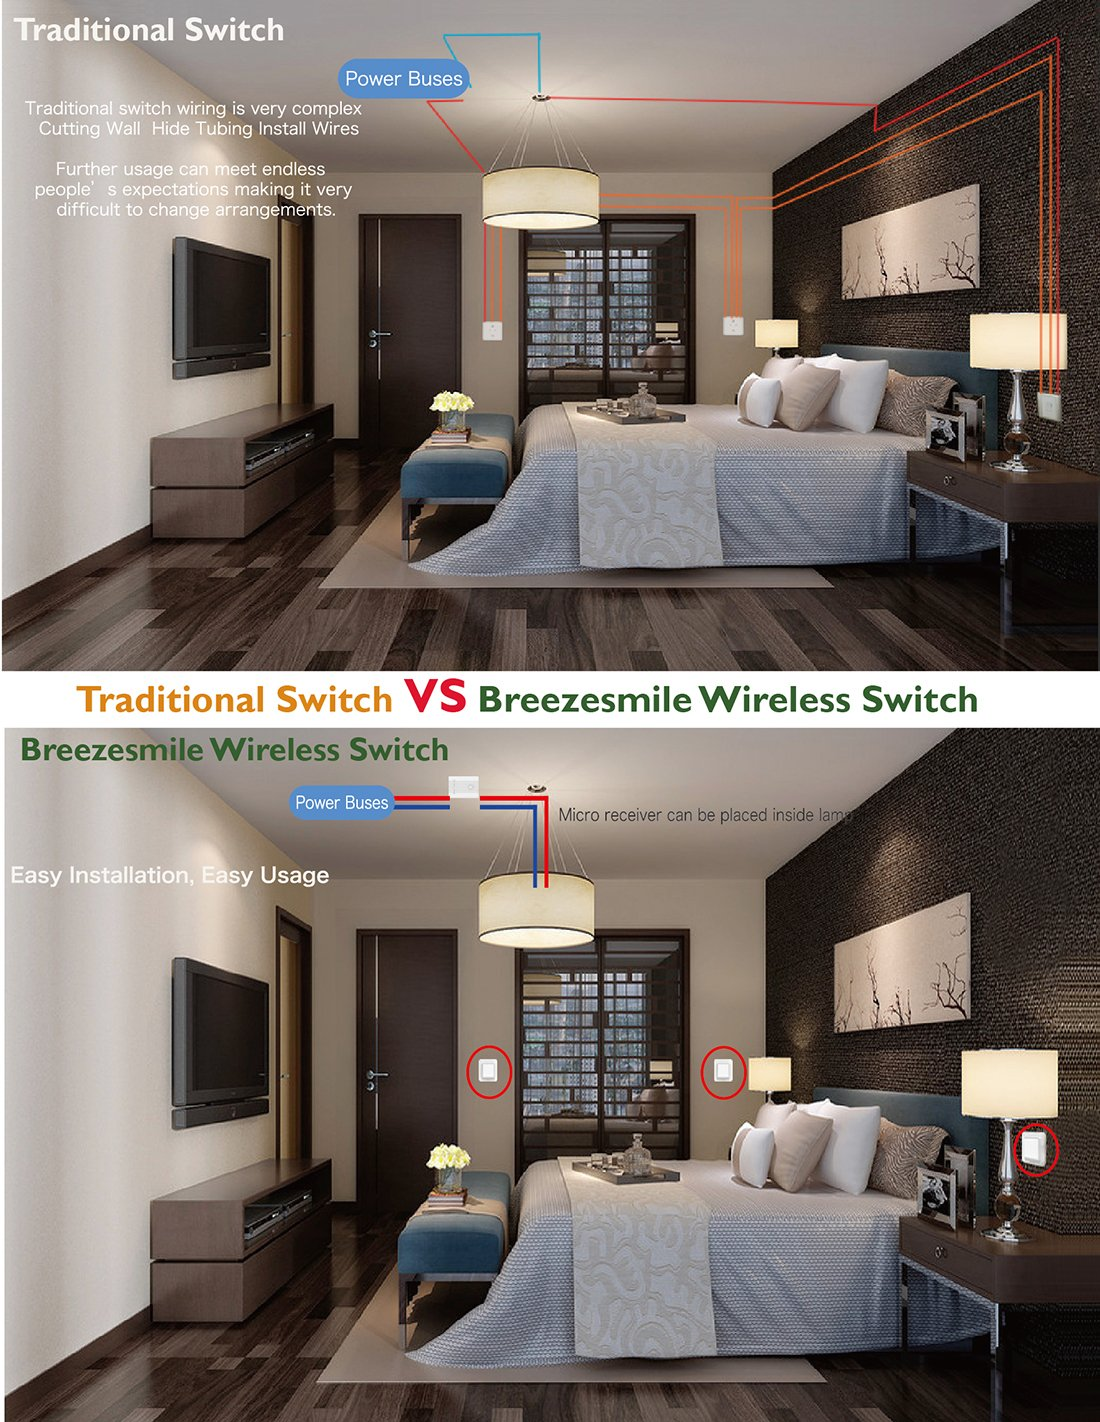 Breezesmile Lights Switch Receiver Simple Wired In 4 Wire Handyman Usa Wiring A 3way Or 4way Controller Compatible With Wireless To Remote Control Light Lamp Fixture On Off